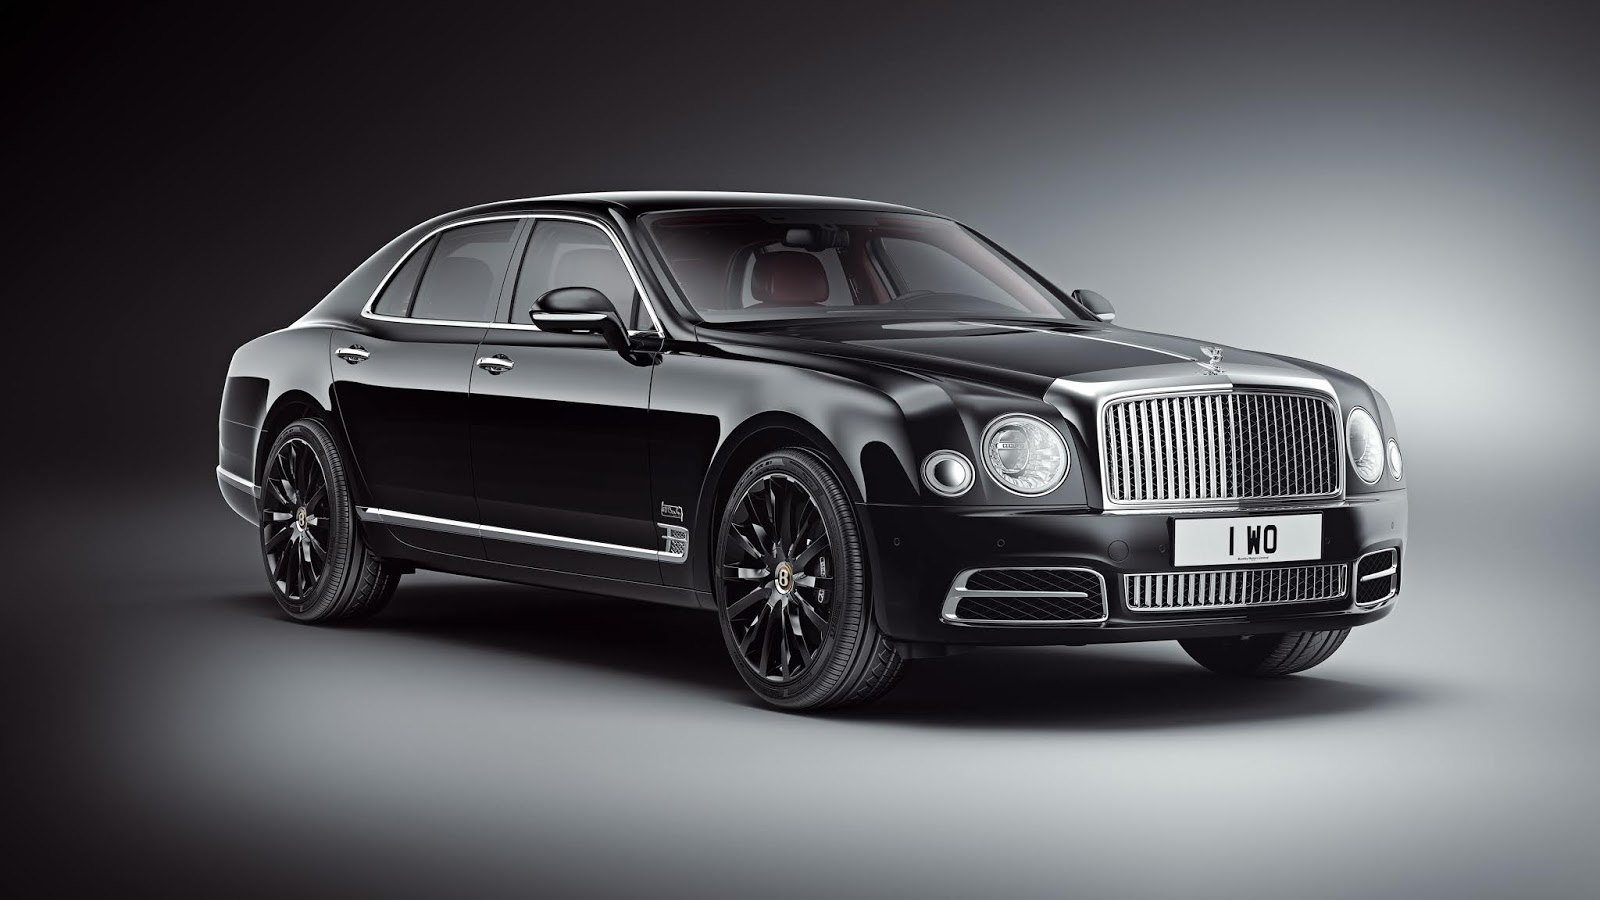 Bentley Is Demonstrating The Beauty Of Bespoke With A New Very Special Limited Edition Mulsanne W O By Mulliner Pays Homage